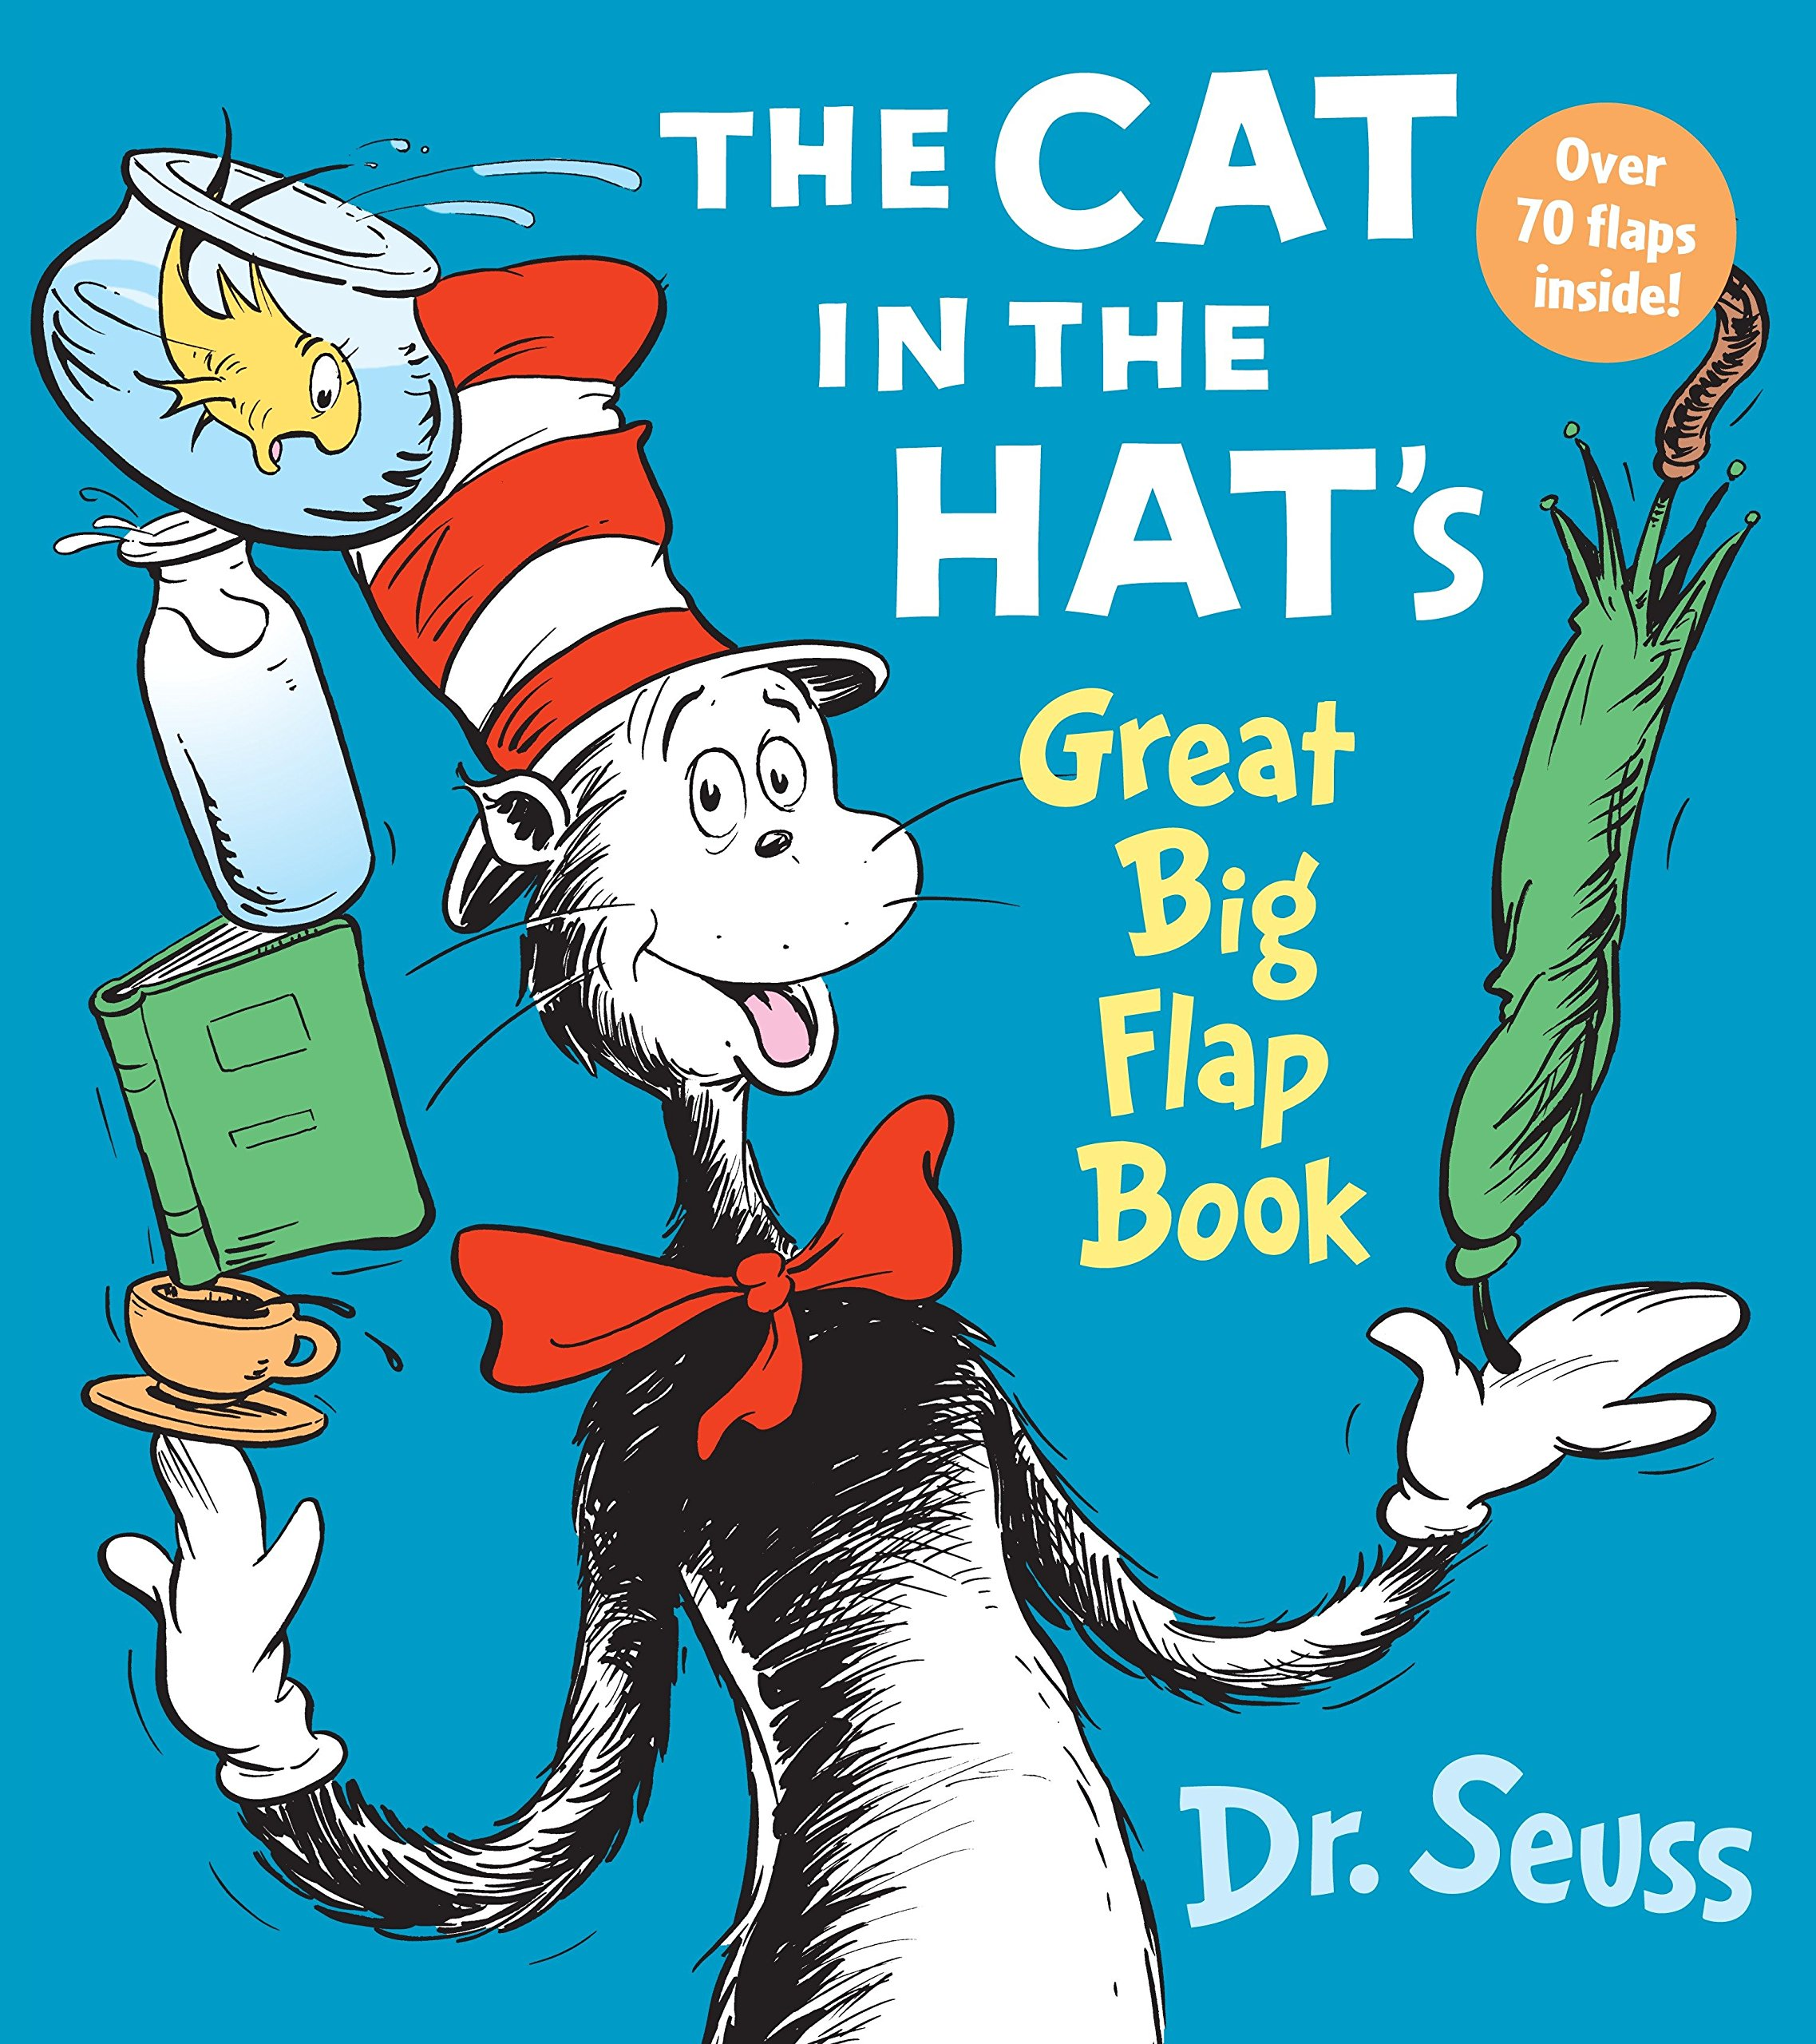 amazon the cat in the hat great big flap book dr seuss